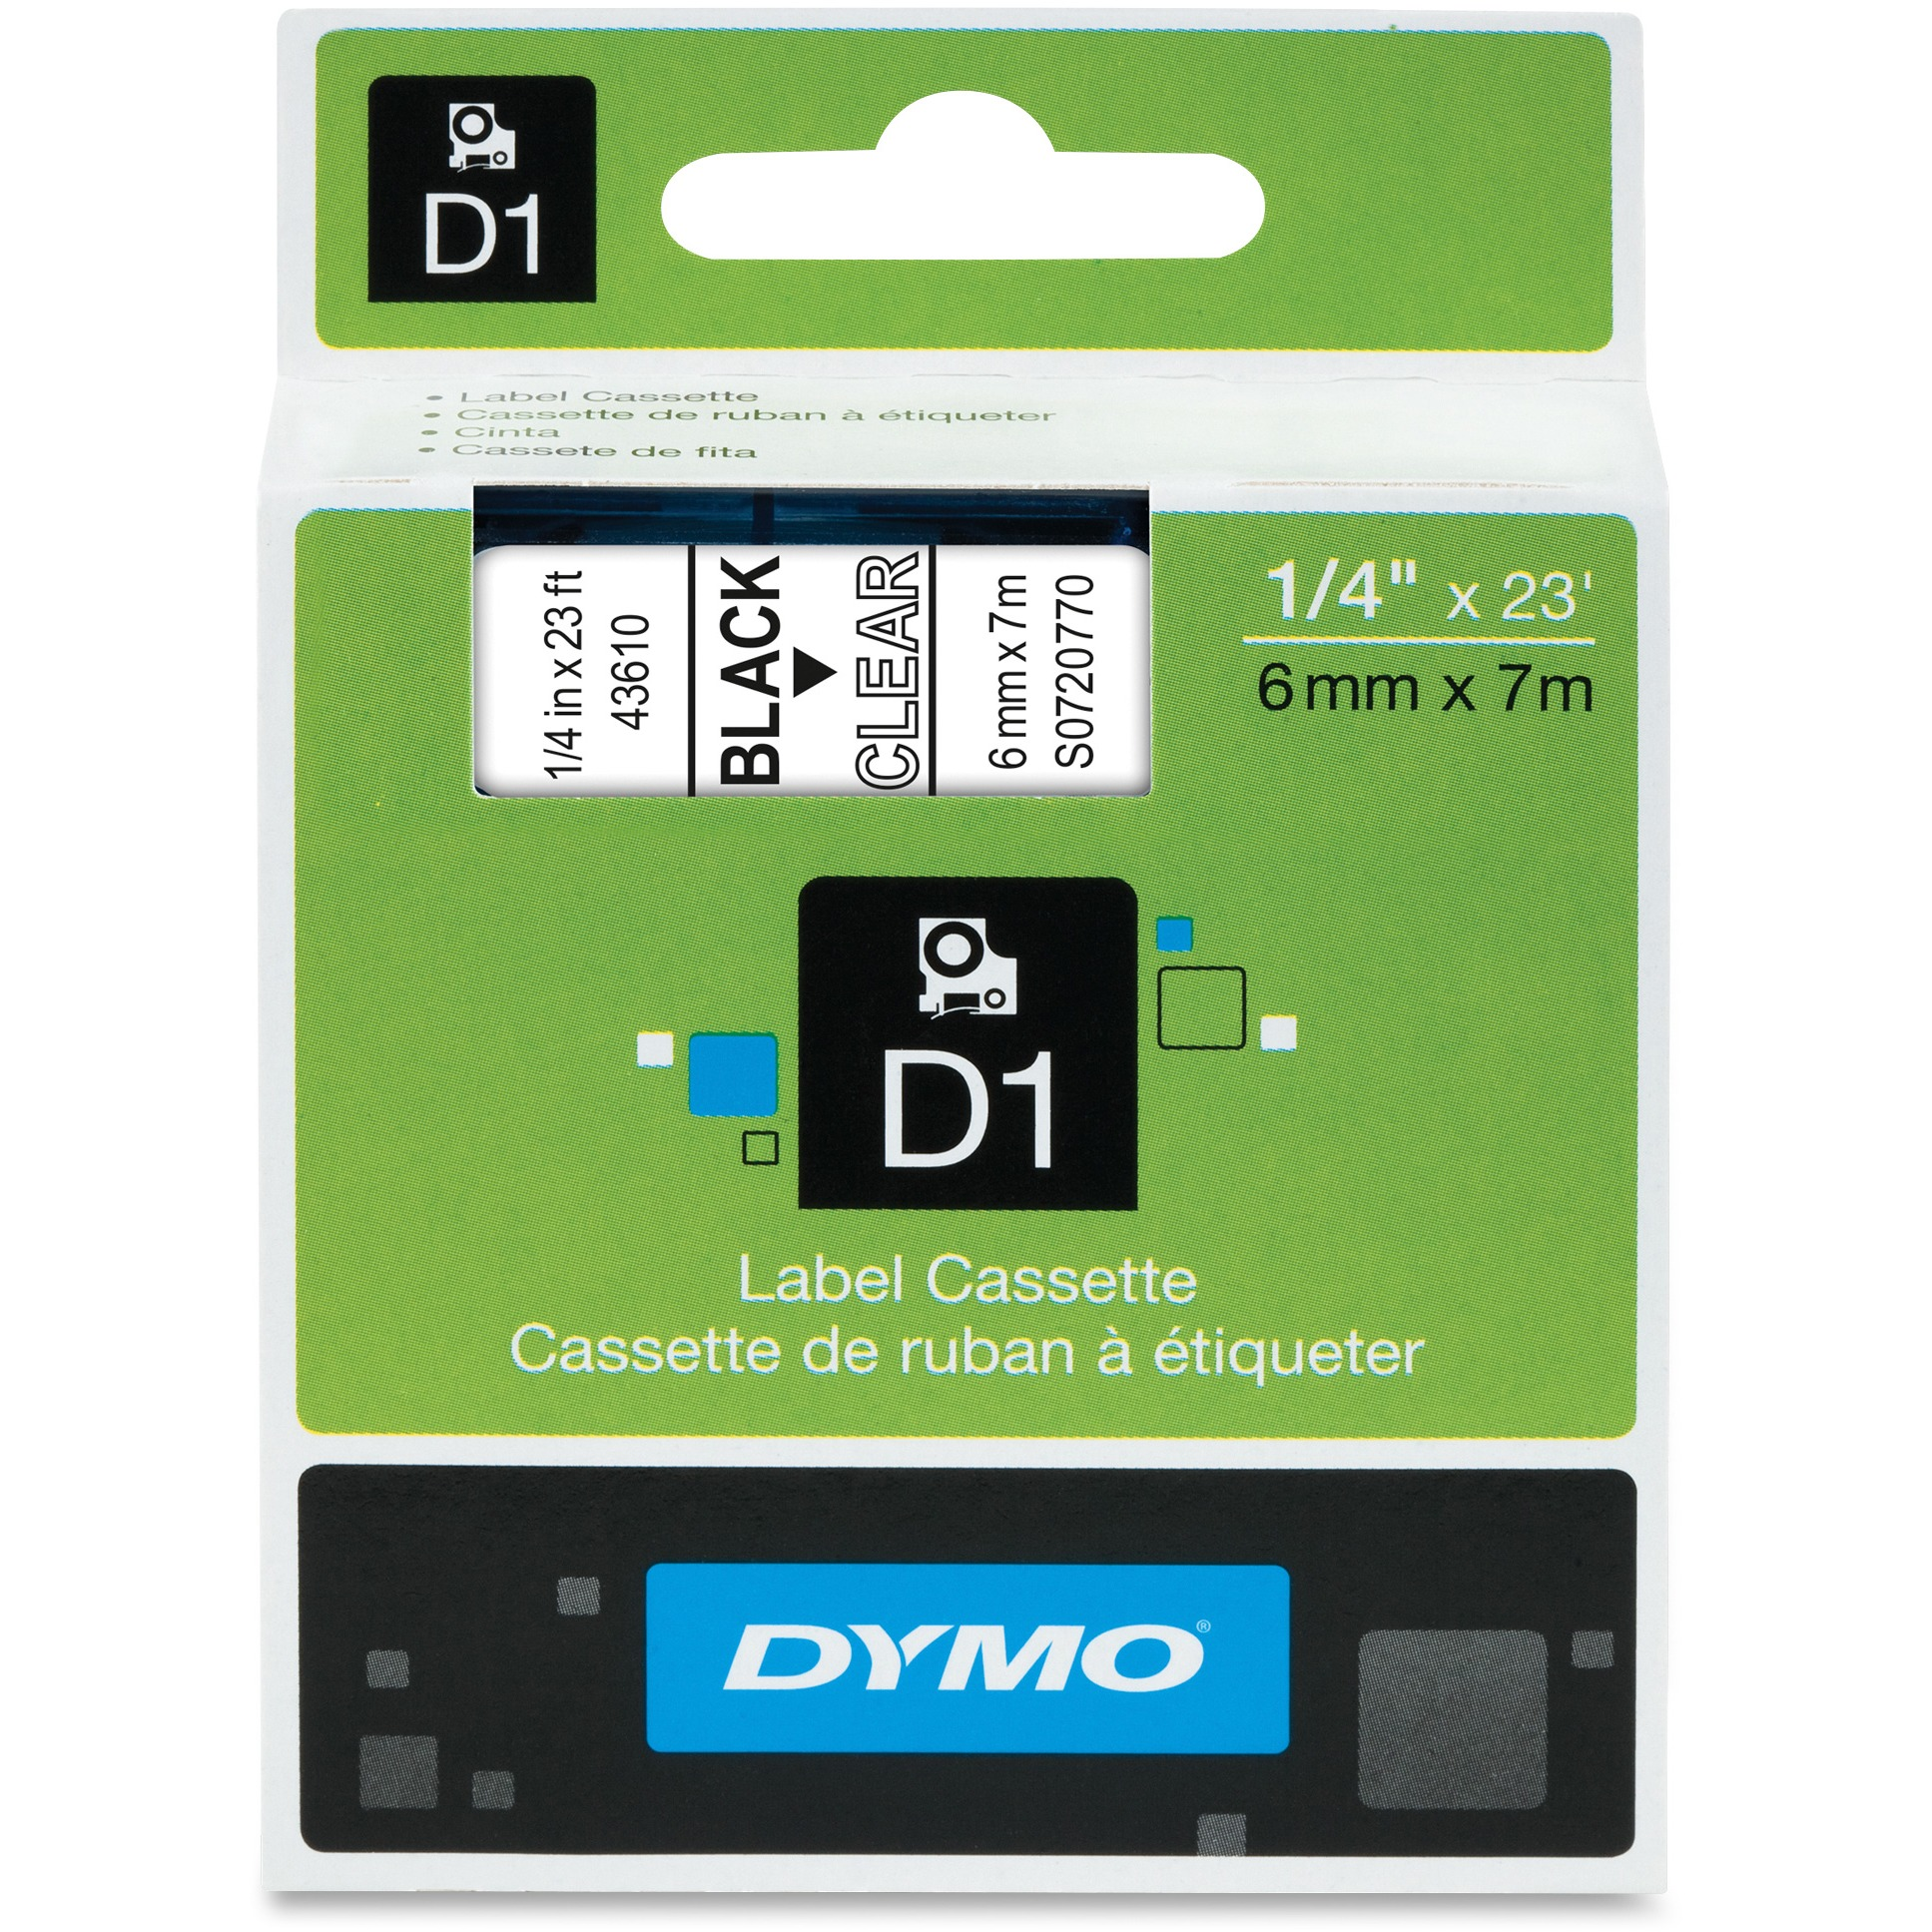 DYMO Standard D1 43610 Labeling Tape (Black Print on Clear Tape , 1/4'' W x 23' L , 1 Cartridge)